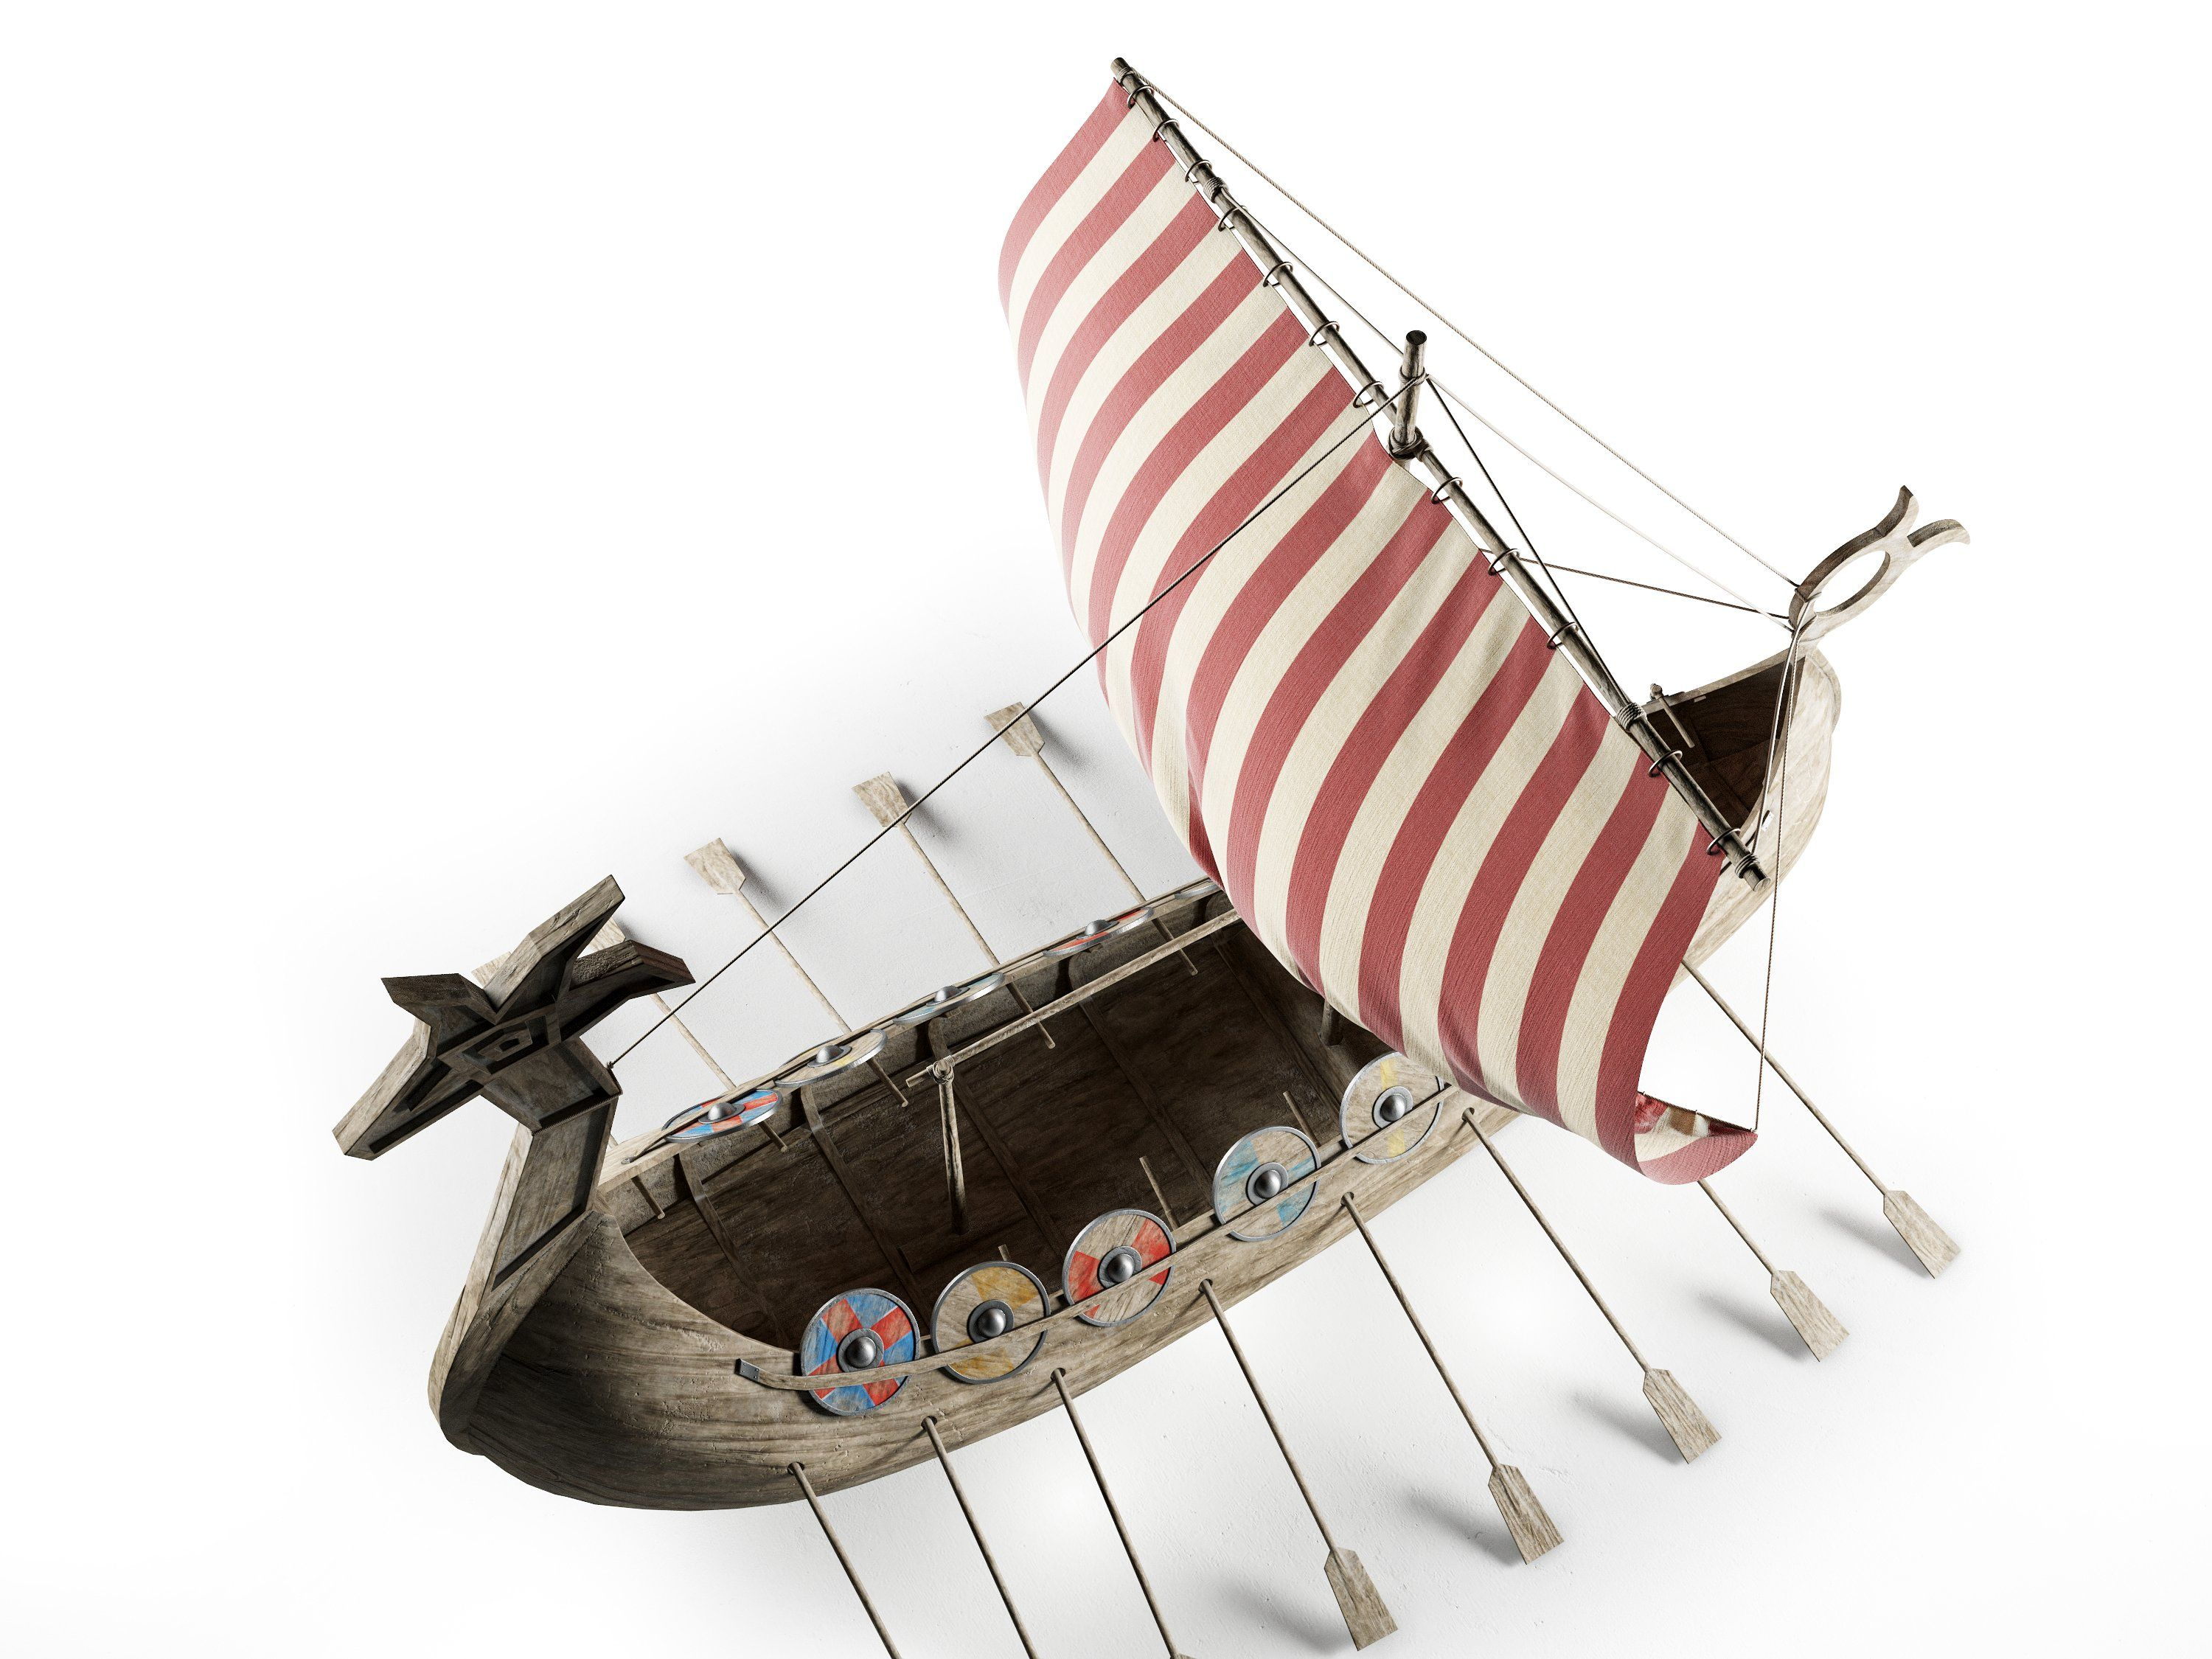 Viking Ship Viking Ship Creative Typography Design Vikings